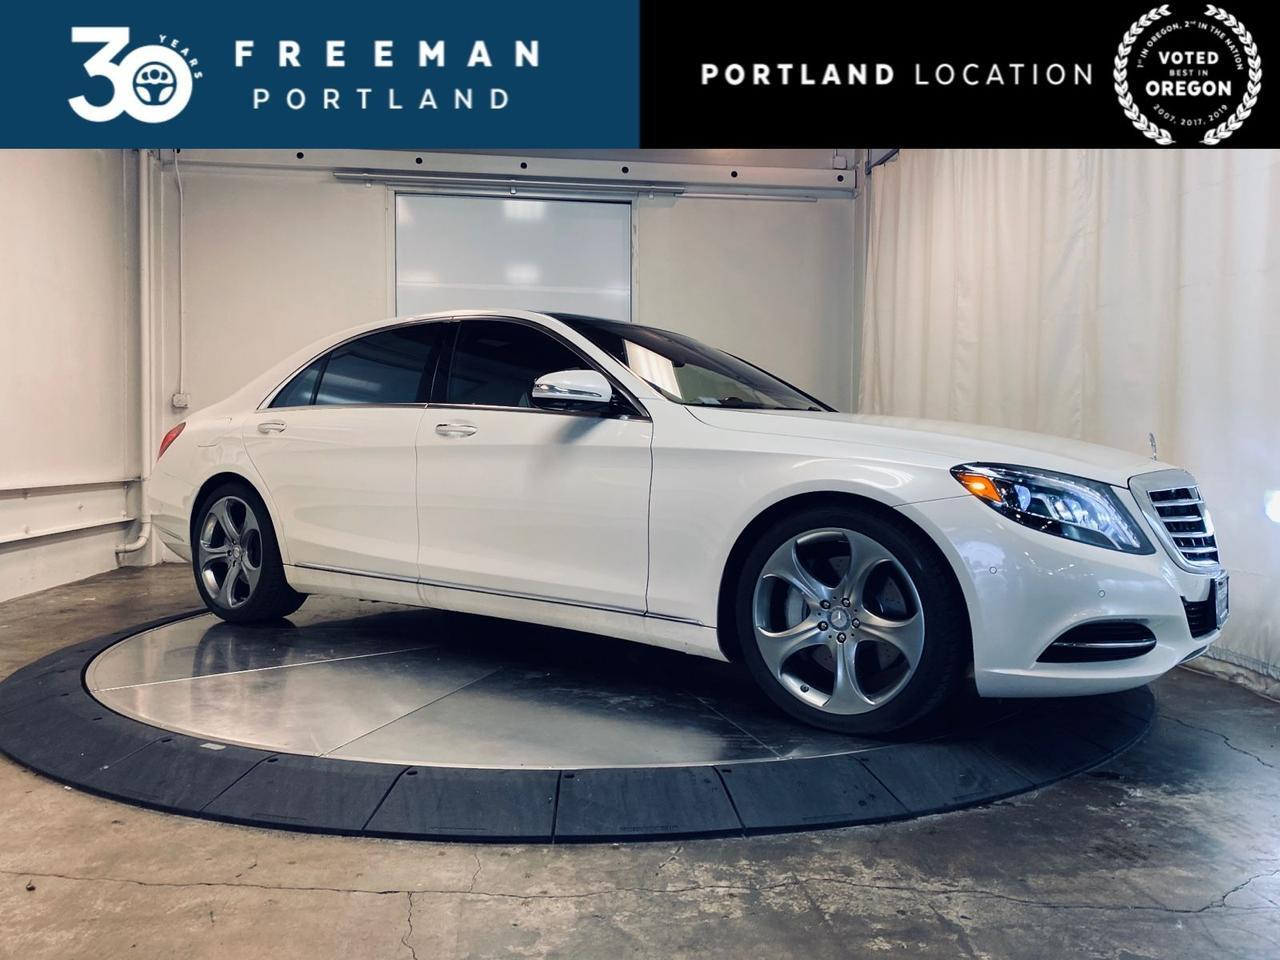 2017 Mercedes-Benz S 550 DISTRONIC+ 360 Camera Ventilated Seats Pano 17k Miles Portland OR